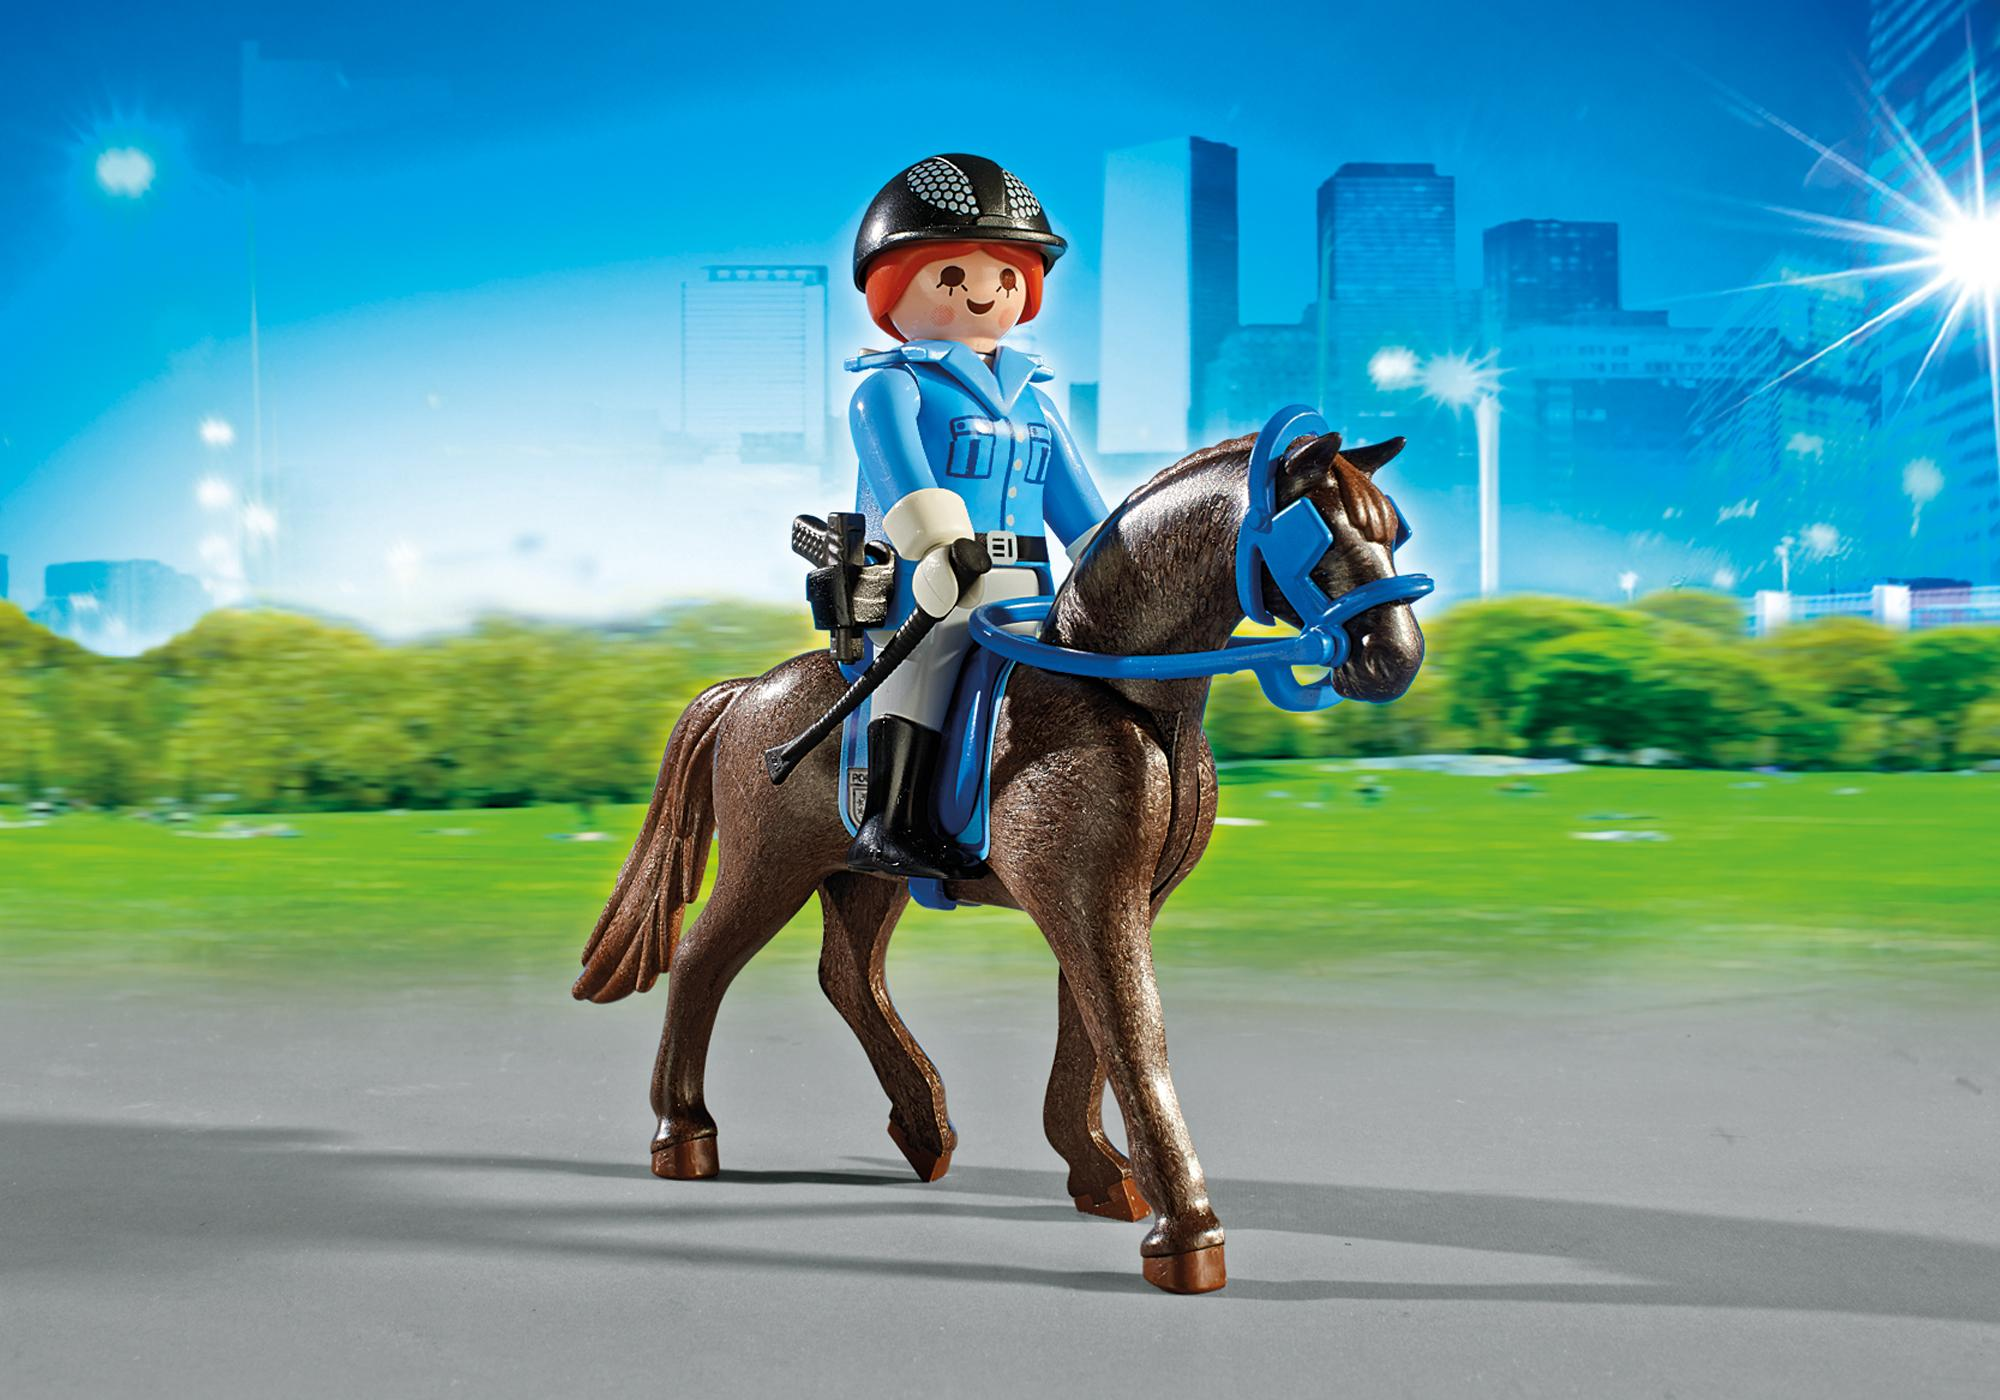 http://media.playmobil.com/i/playmobil/6875_product_extra3